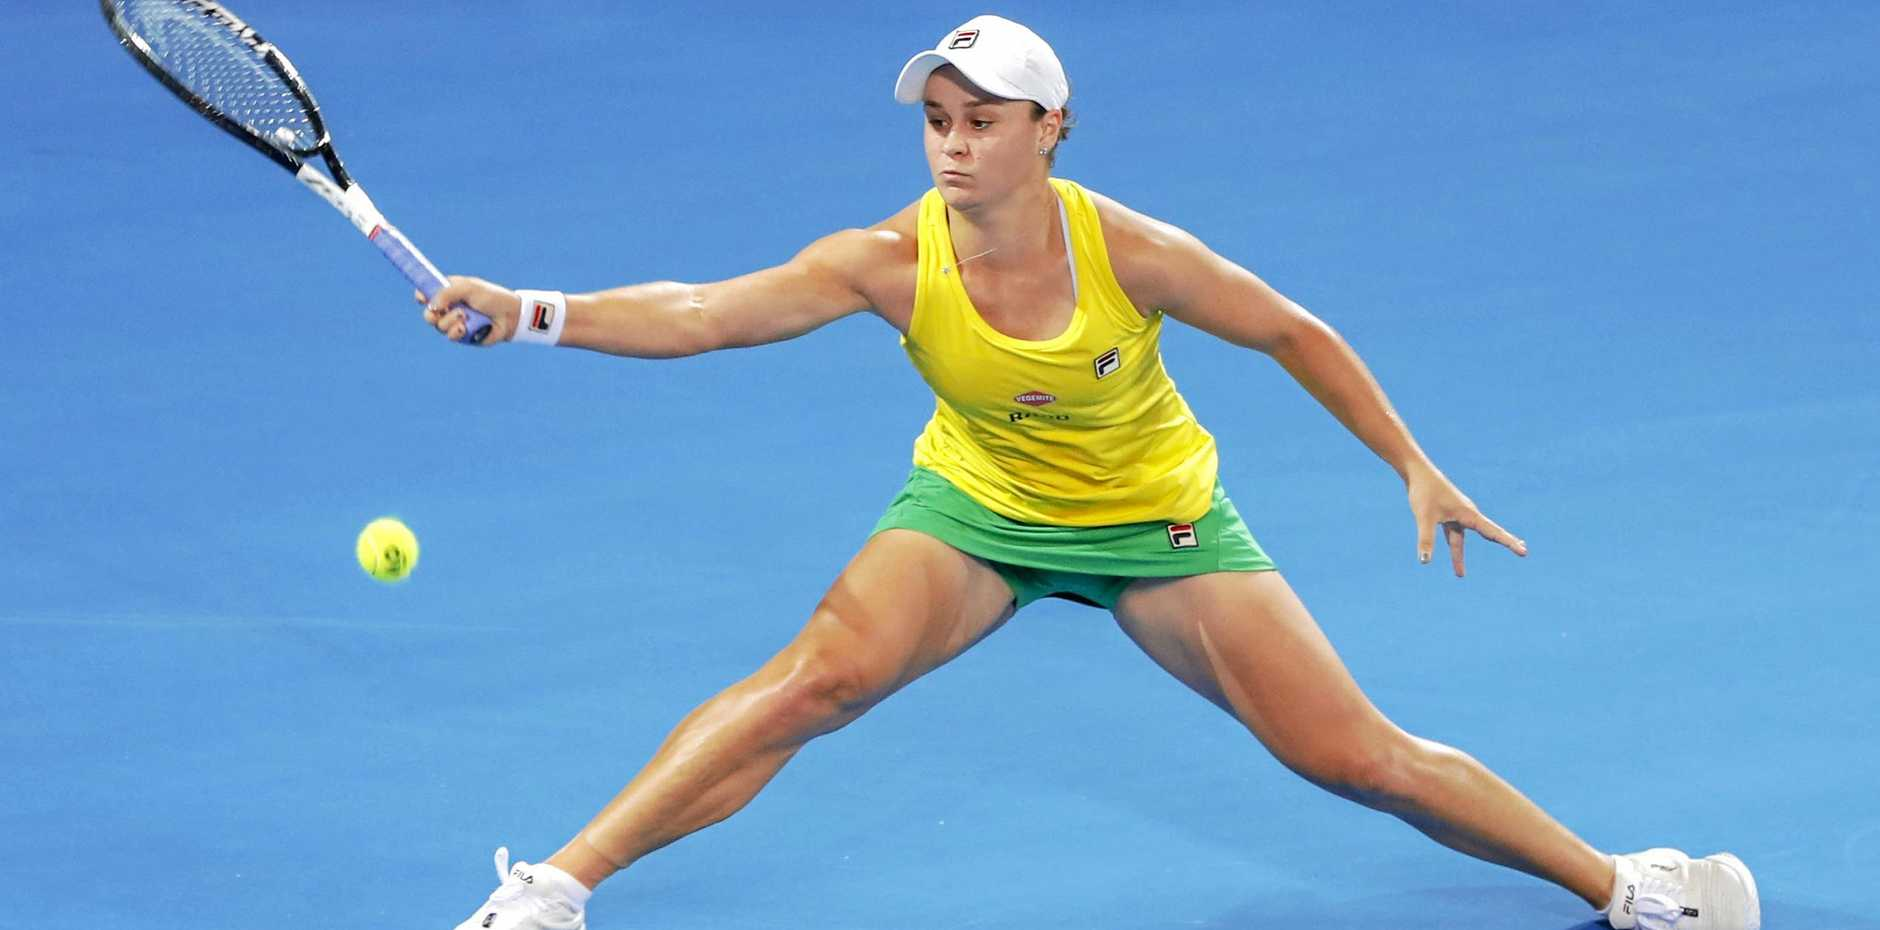 Ashleigh Barty at full stretch against Victoria Azarenka in their Fed Cup World Group semi-final match at Brisbane's Pat Rafter Arena. Picture: Glenn Hunt/AAP